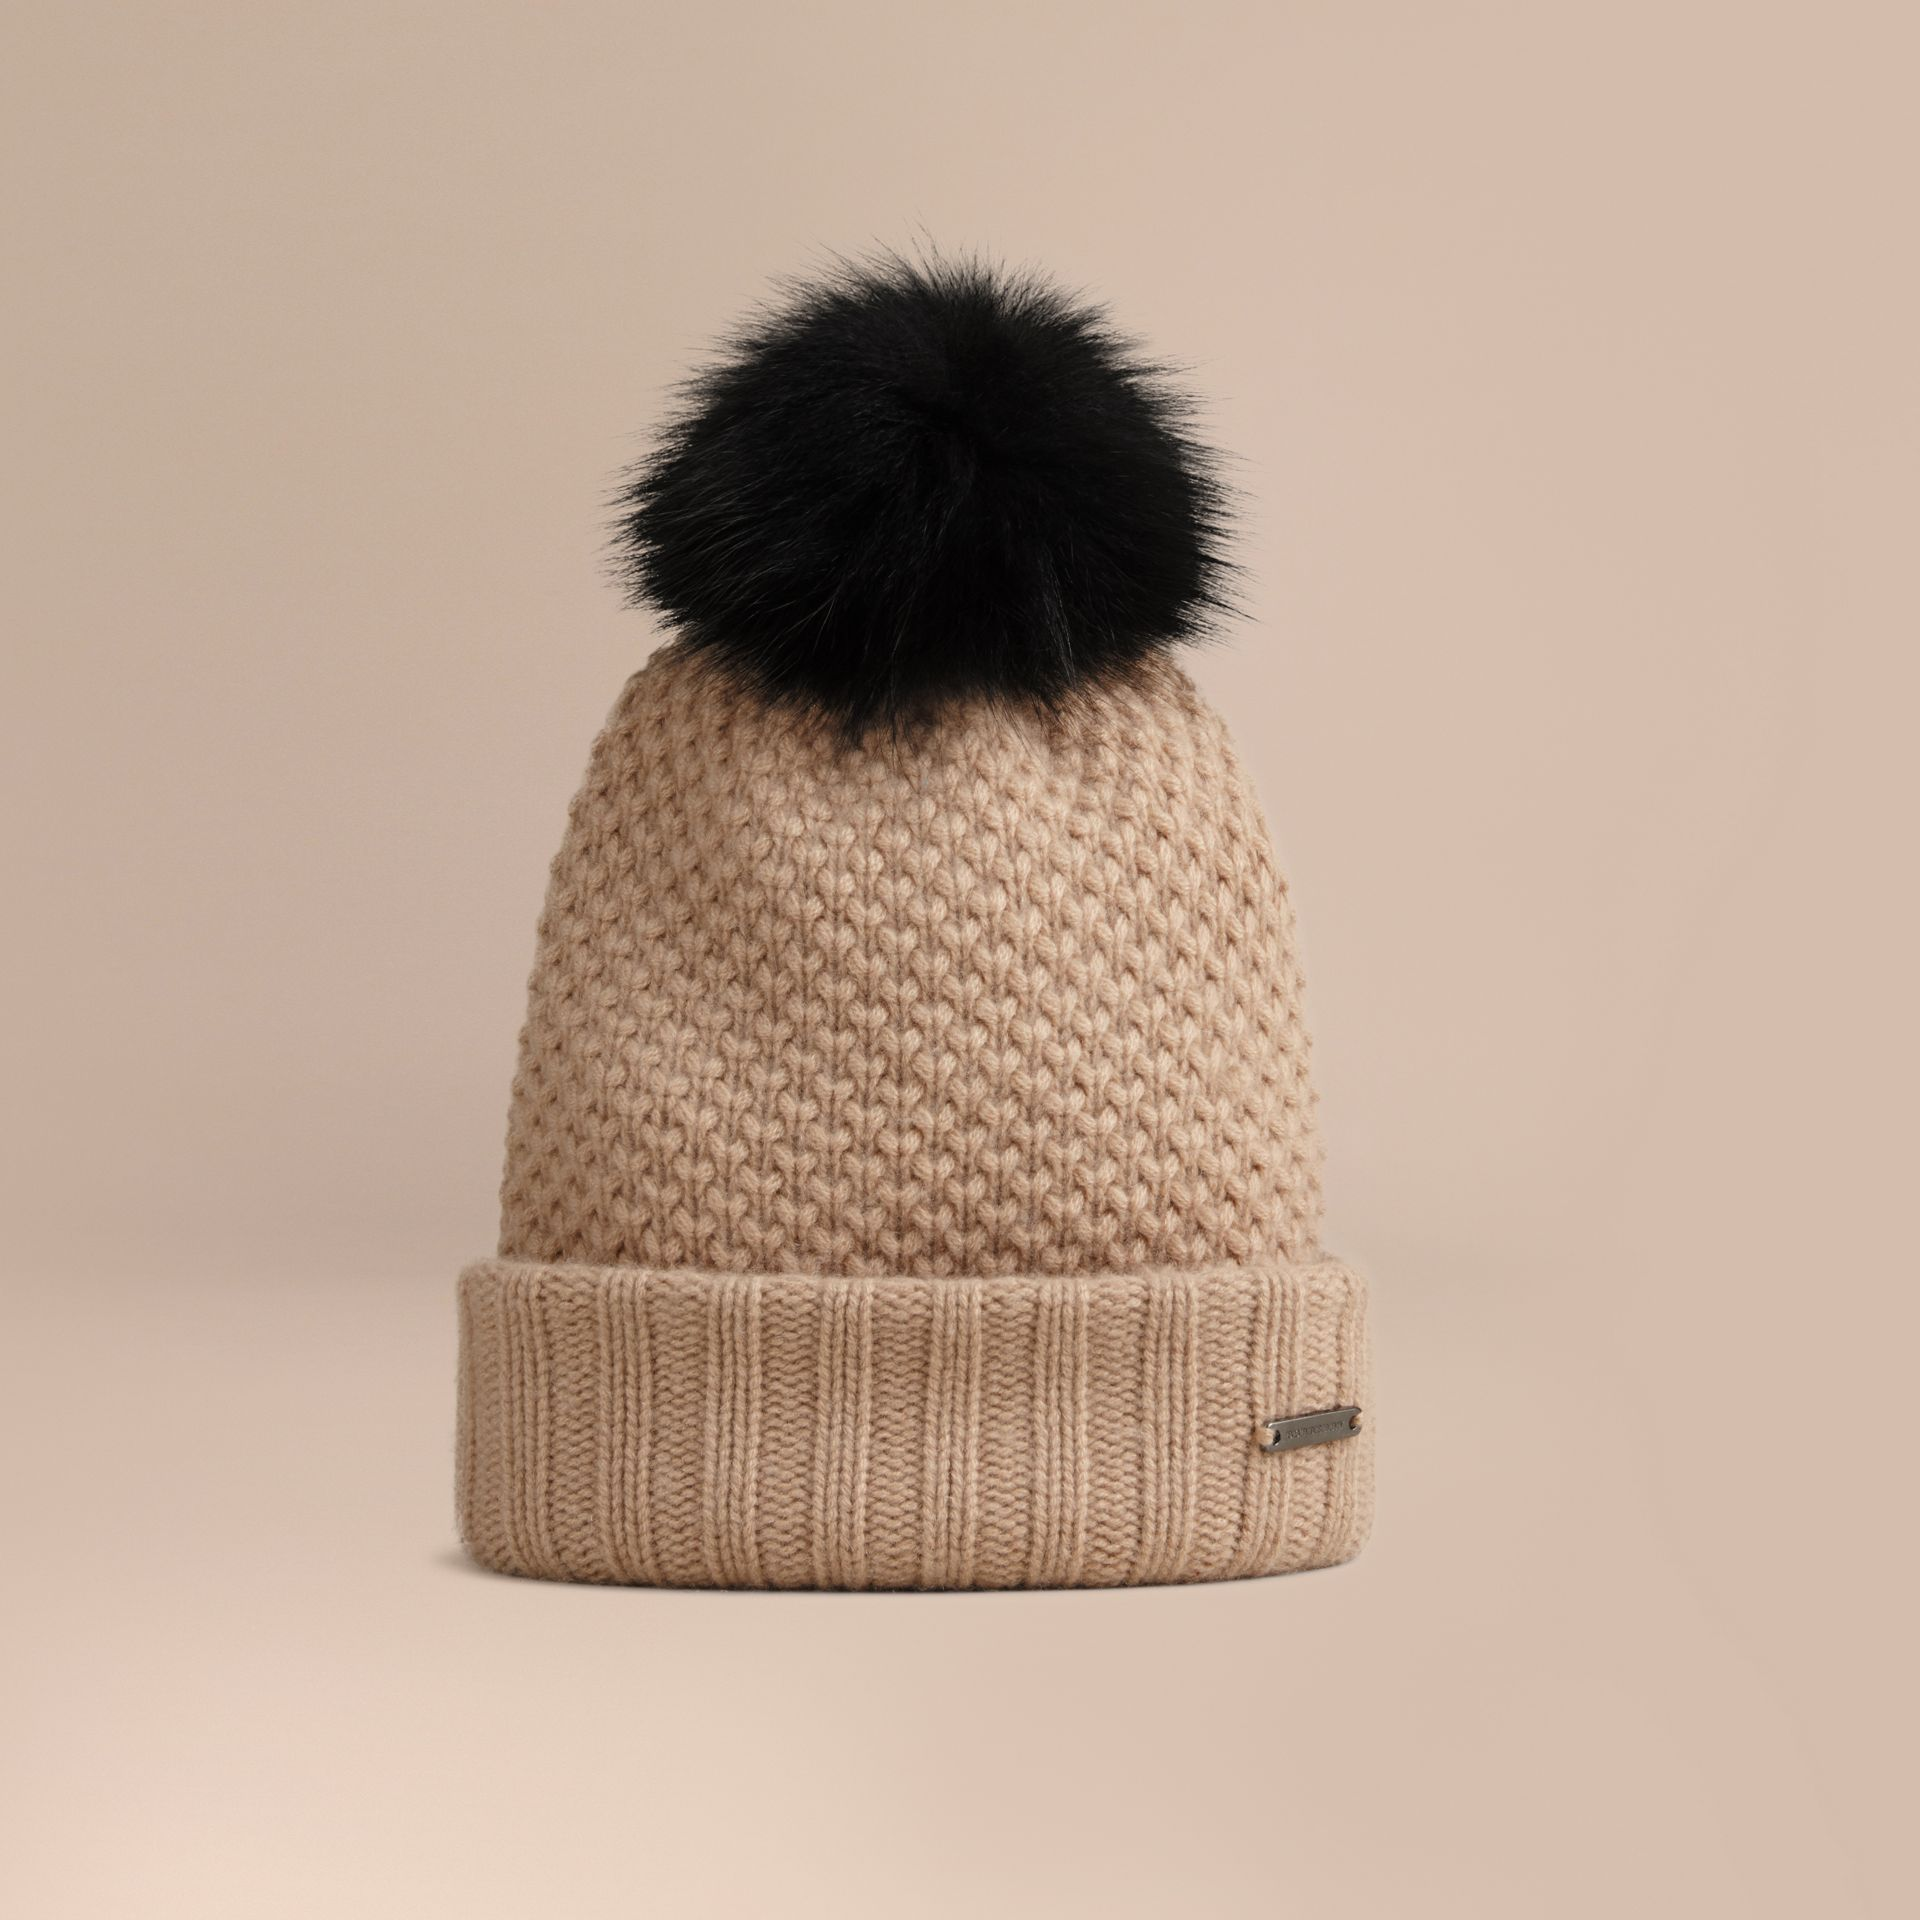 Fur Pom-Pom Wool Cashmere Beanie in Camel - Women | Burberry - gallery image 1